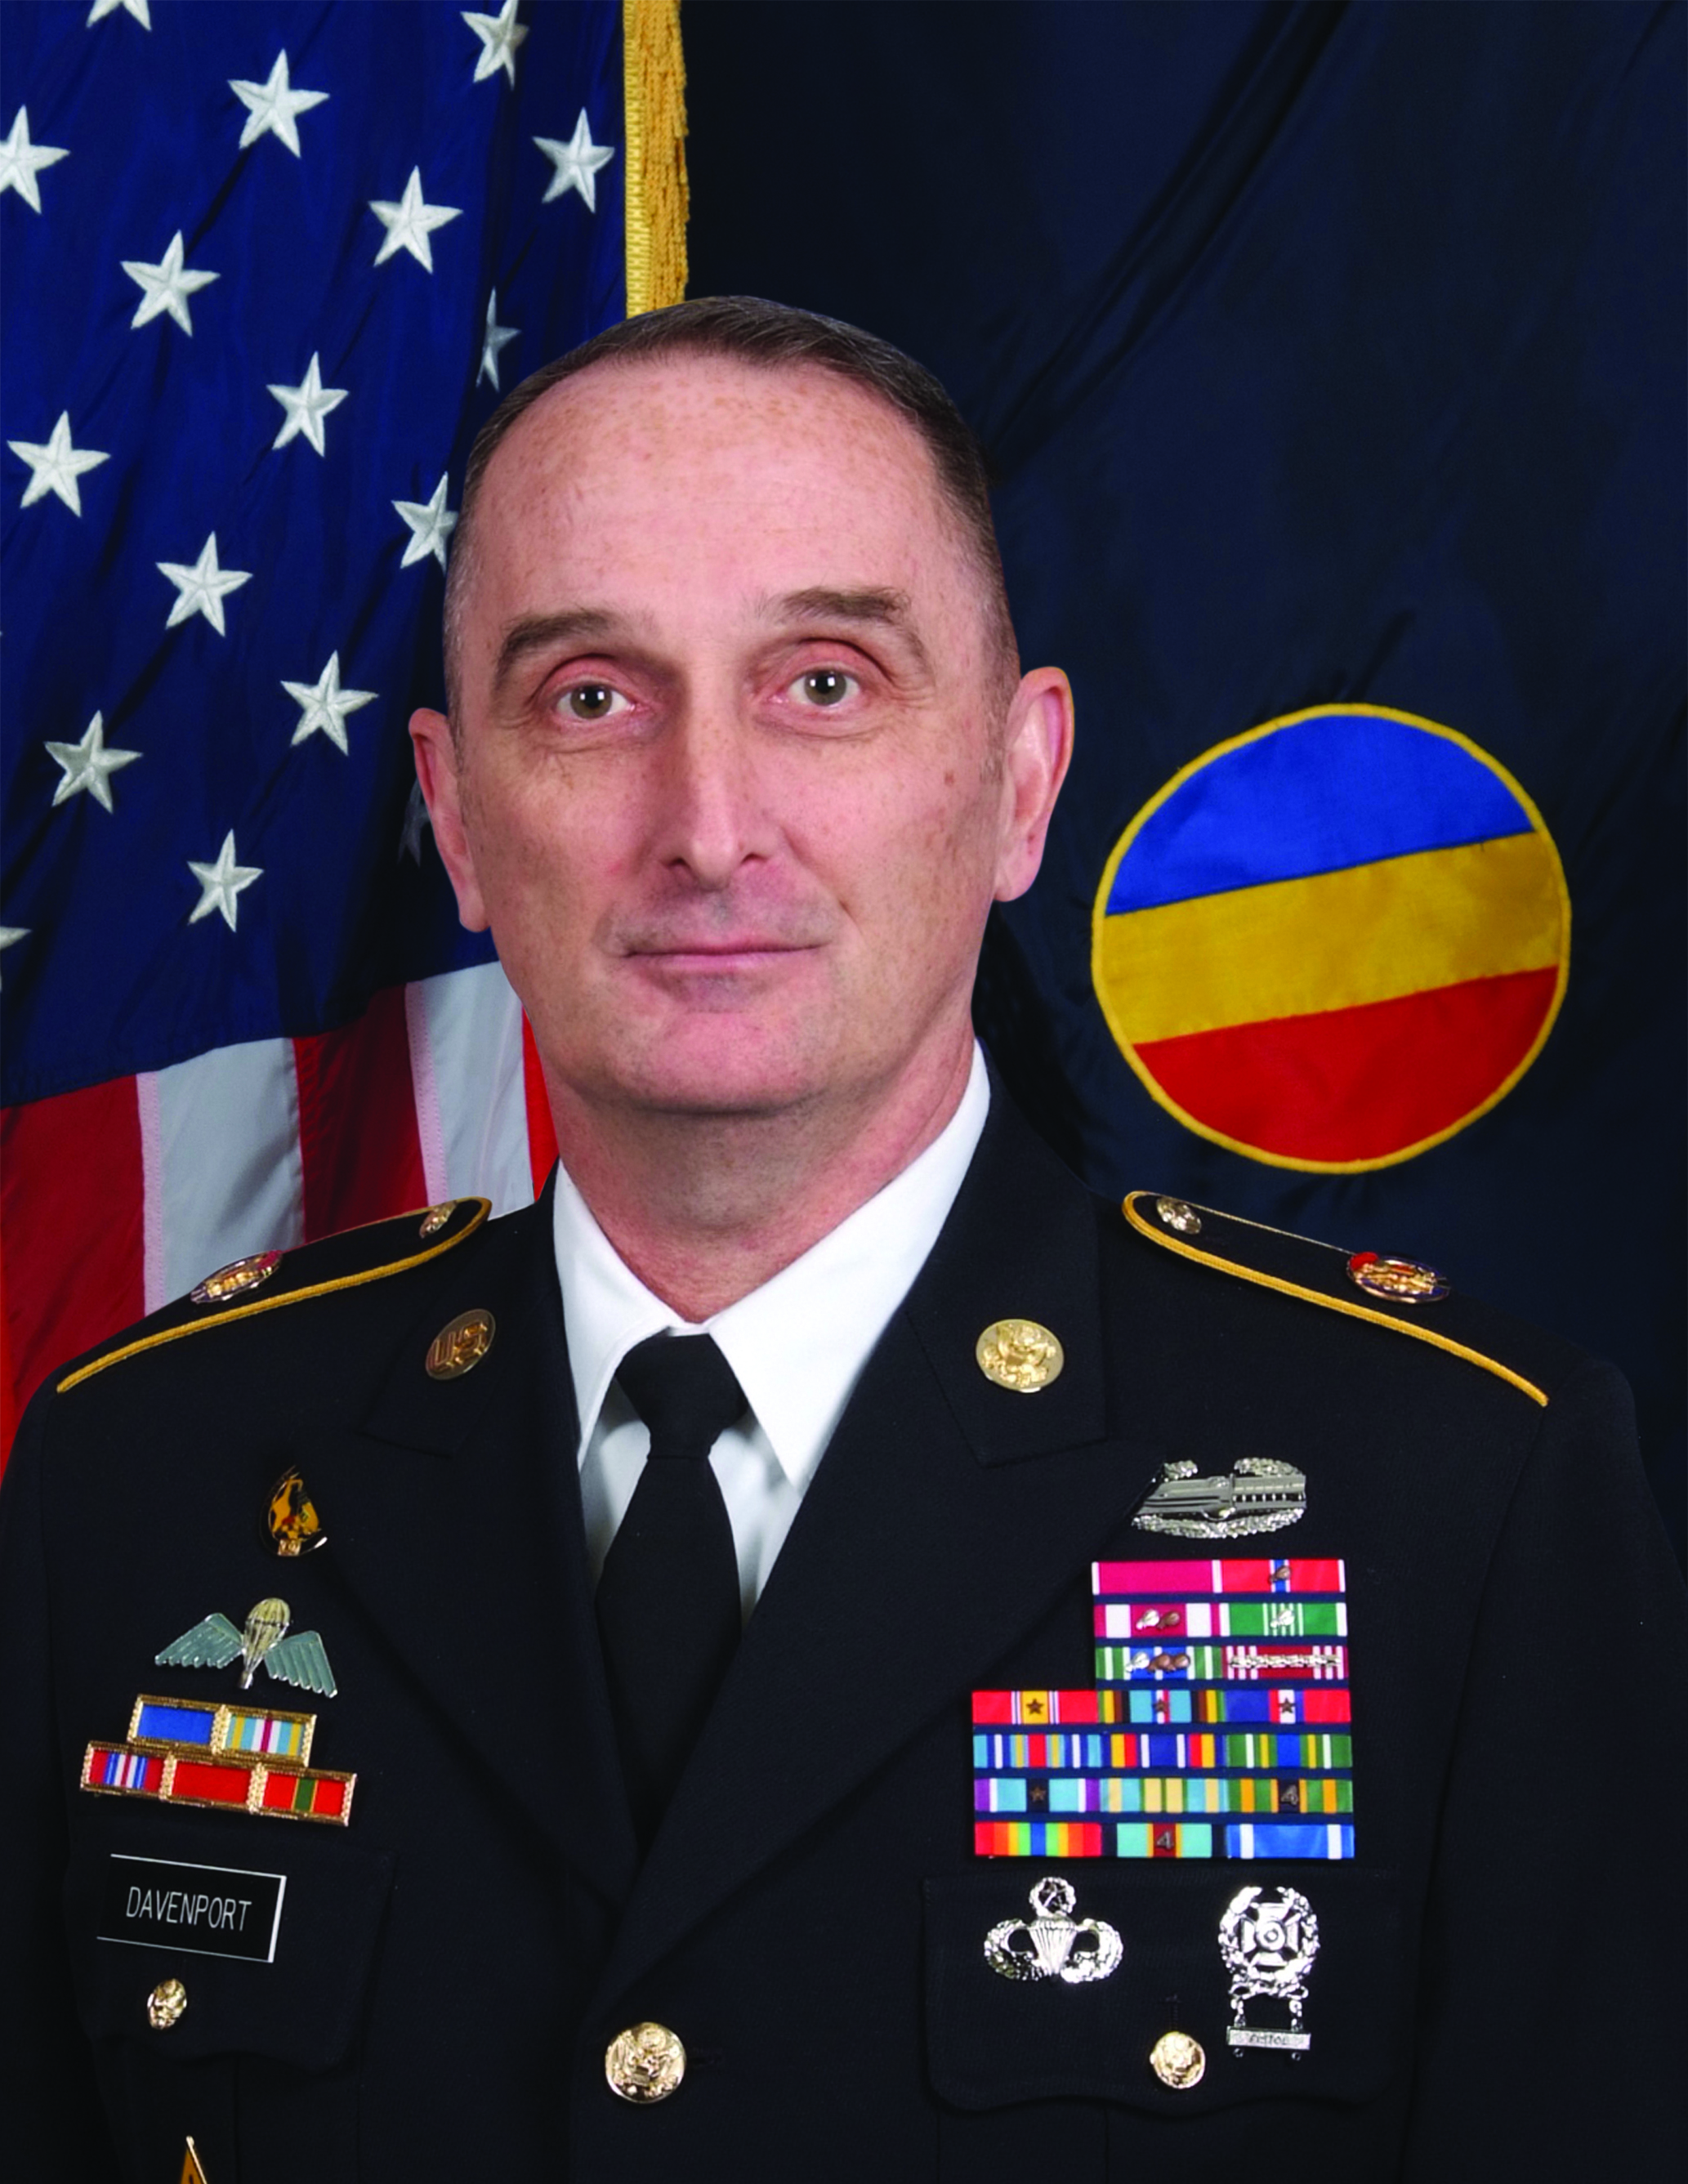 CSM David Davenport